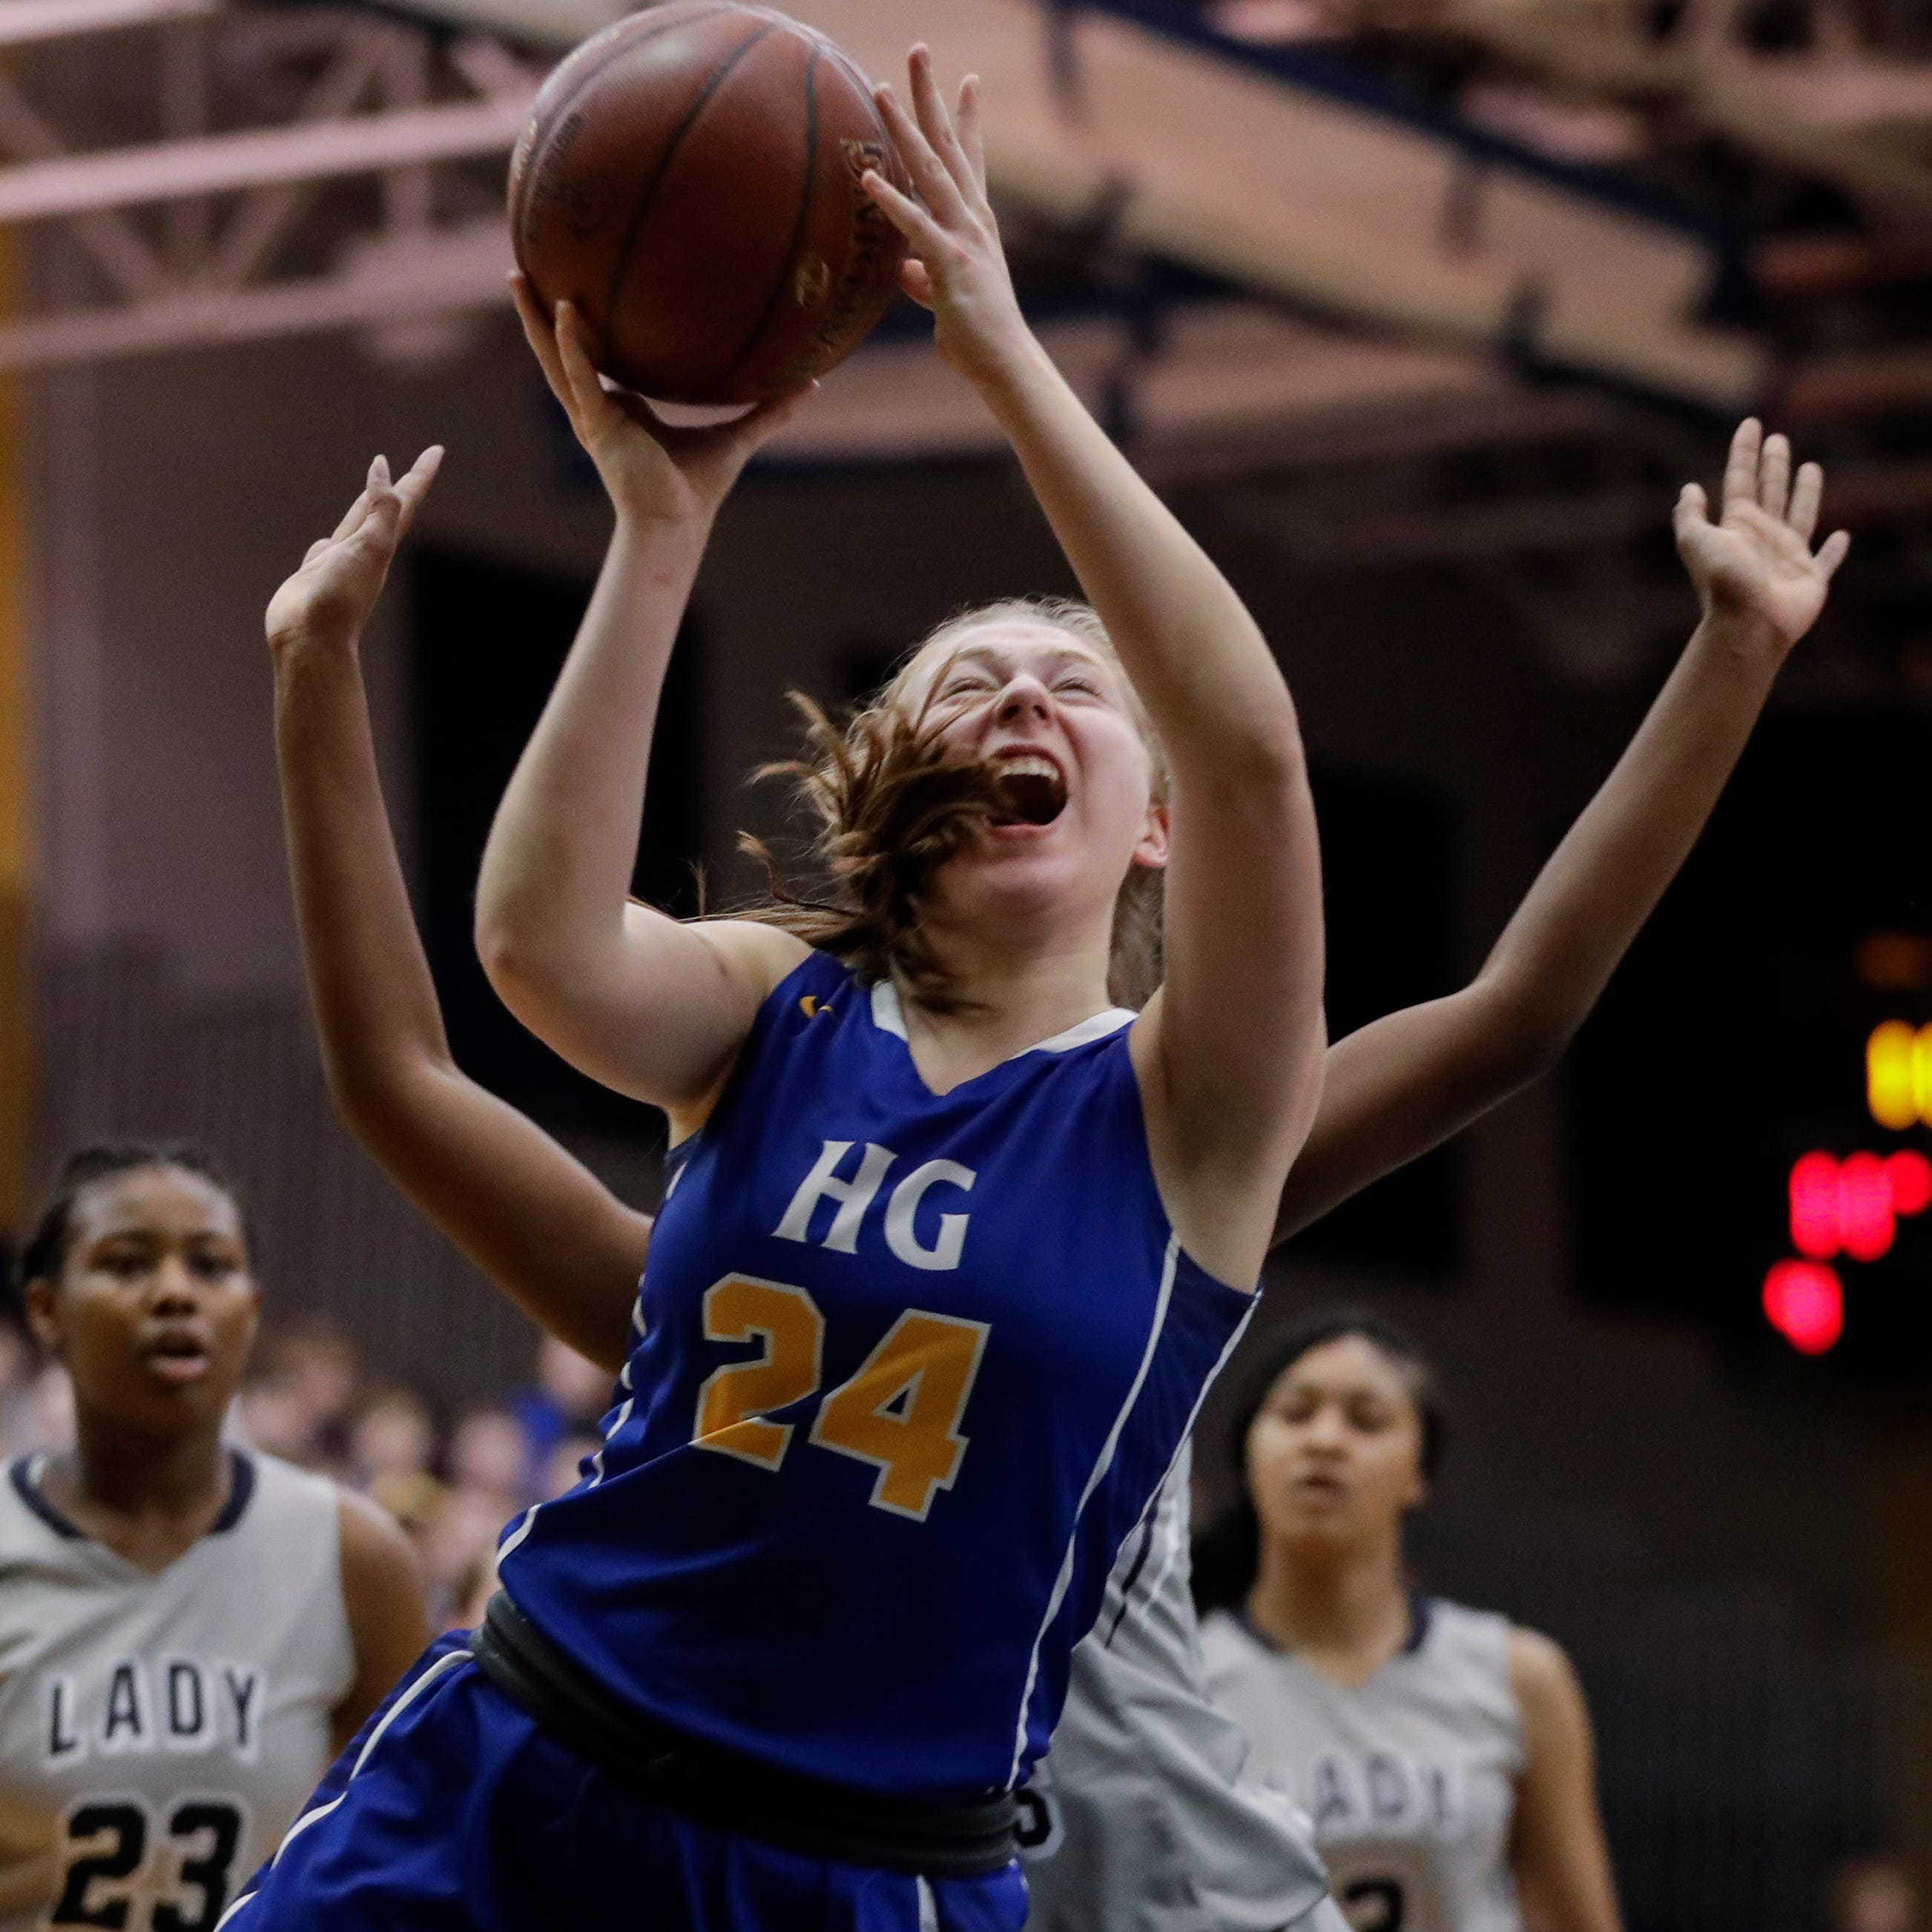 WIAA girls basketball: Howards Grove runs out of gas in sectional final loss